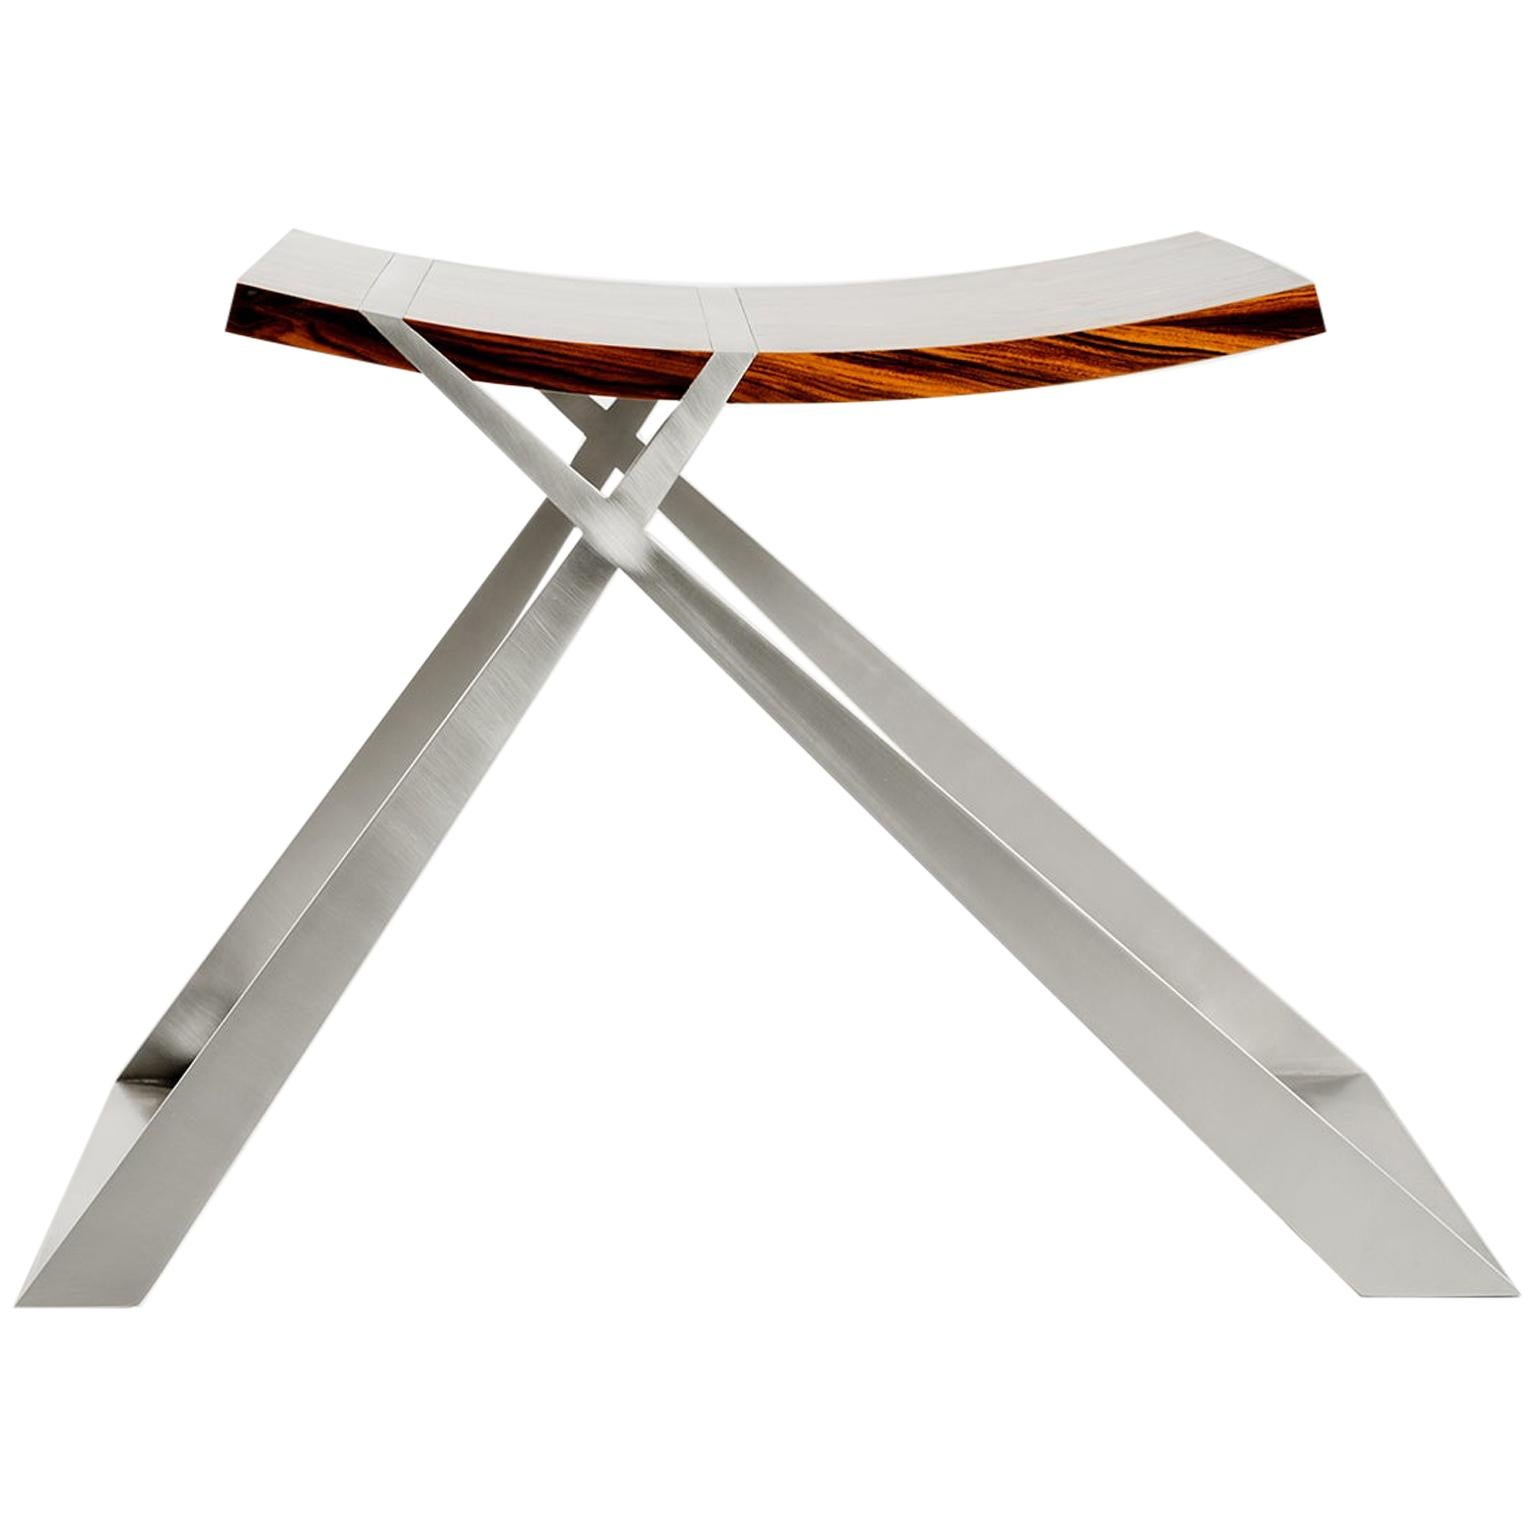 Wooster Stool in Rosewood and Silver Leaf by Dean and Dahl